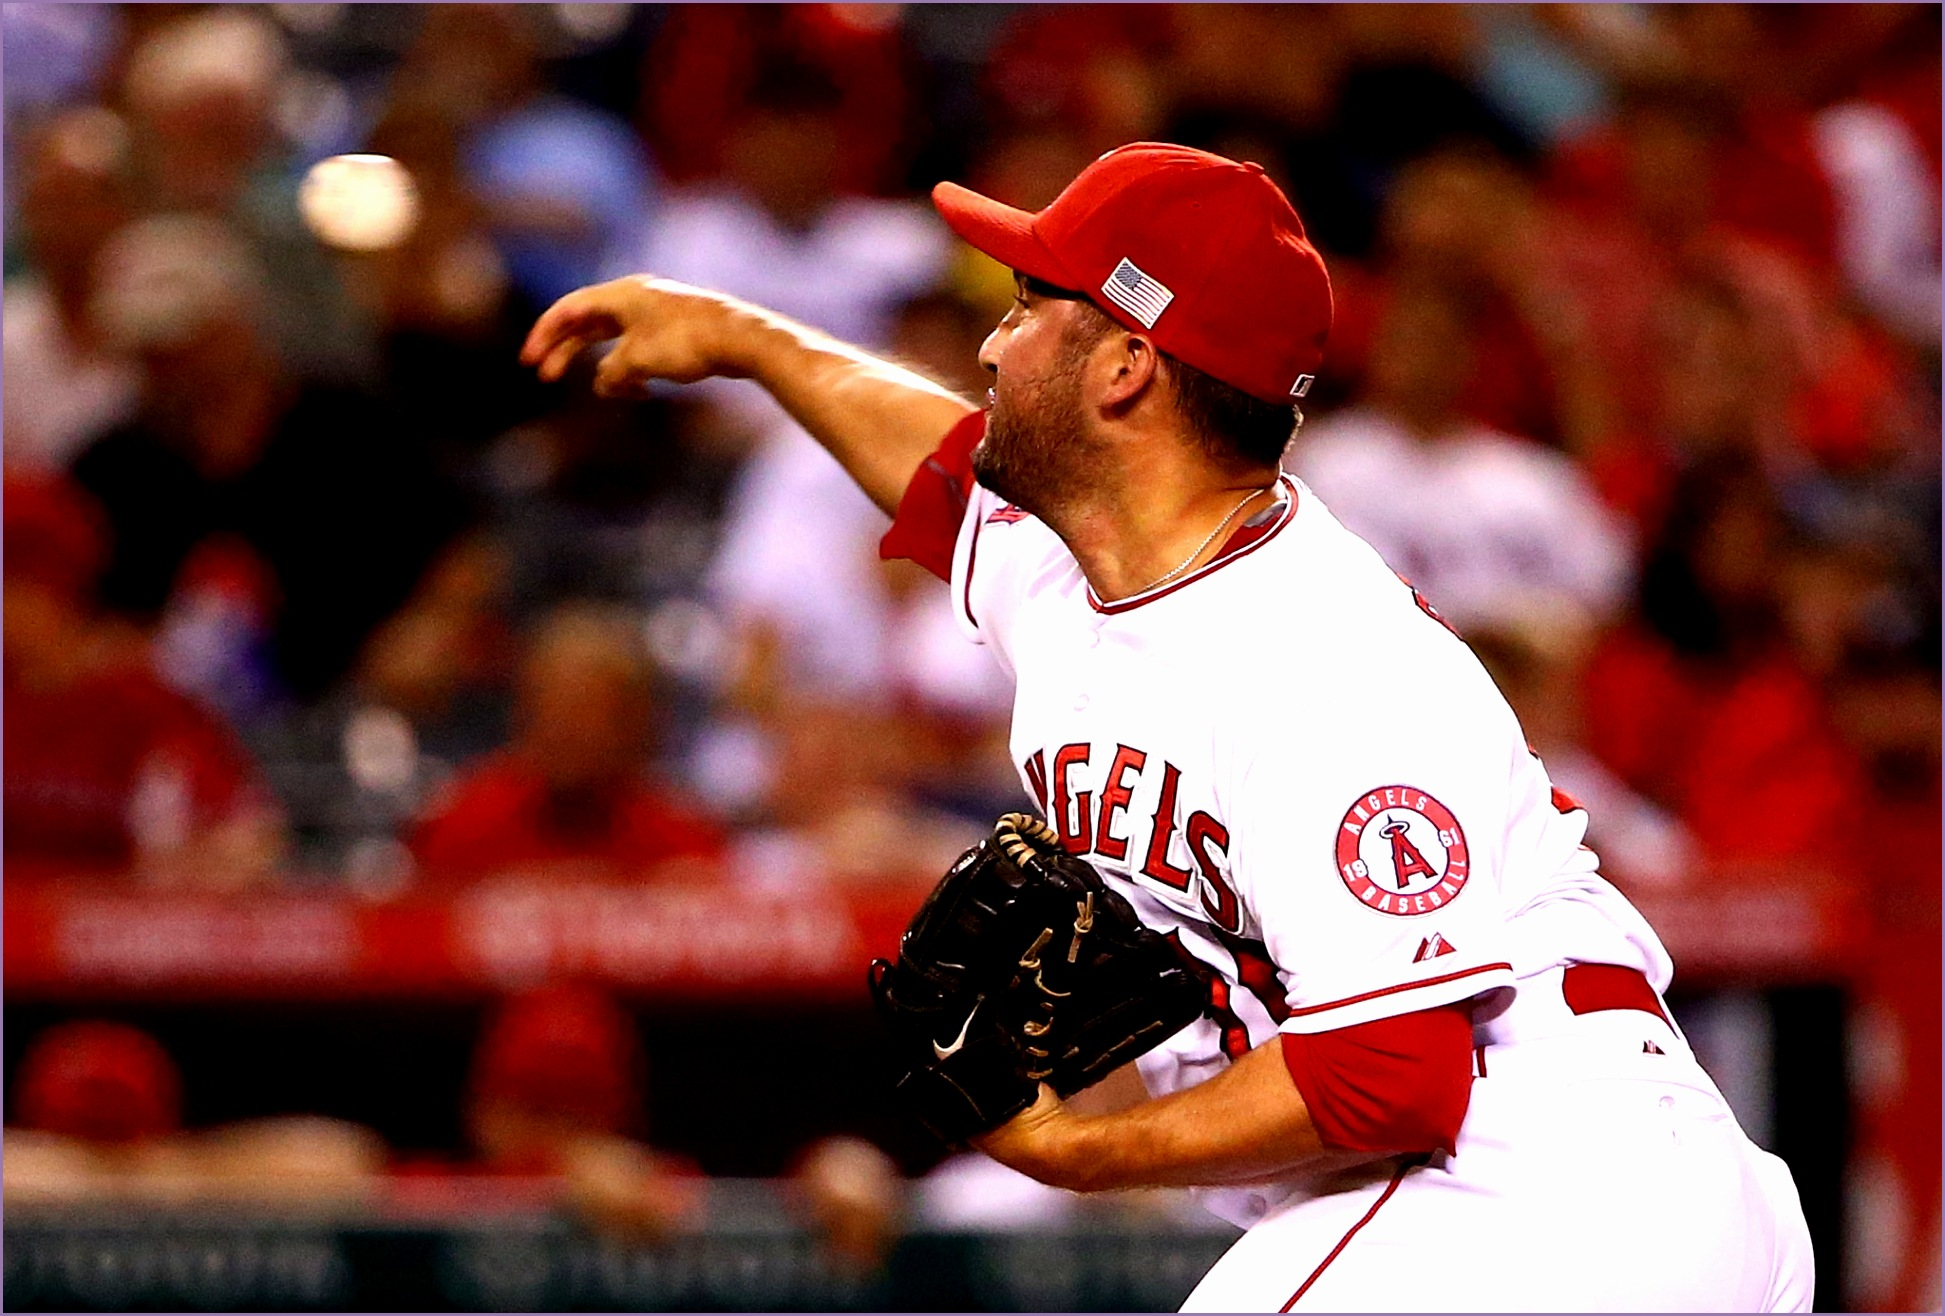 la sp sn angels huston street loses 13 pounds flu like symptoms story